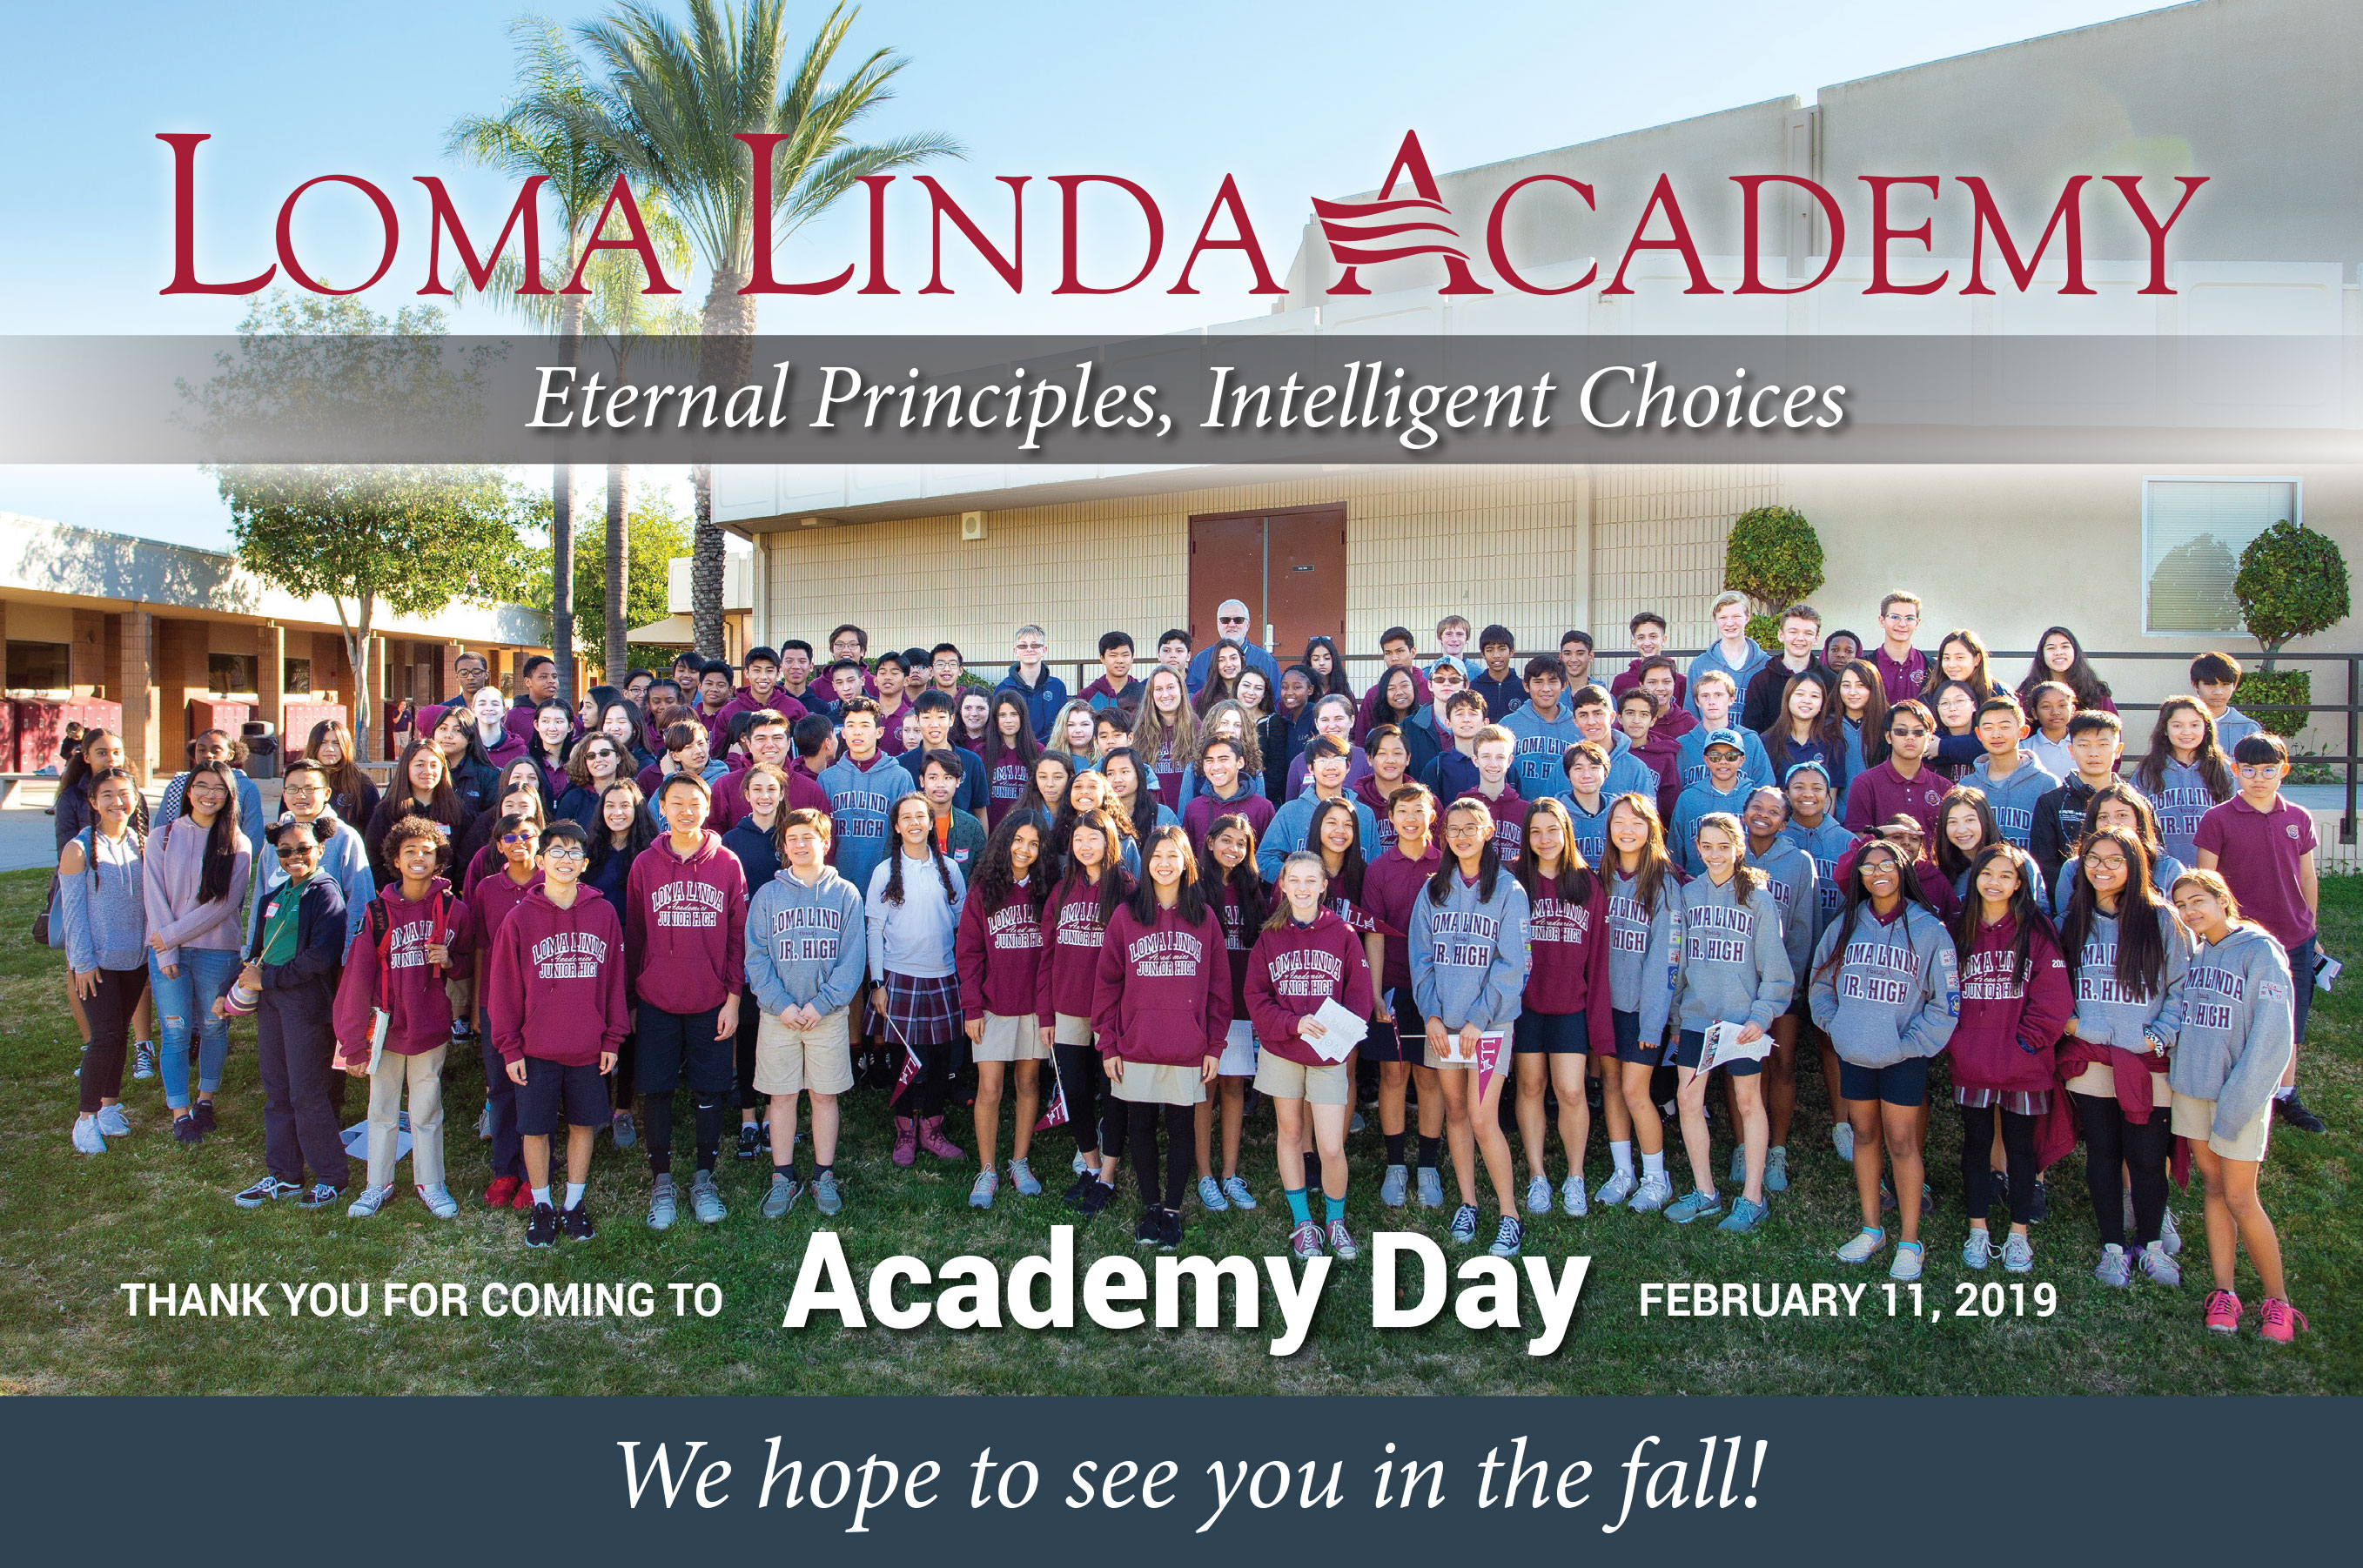 Academy Day Photo